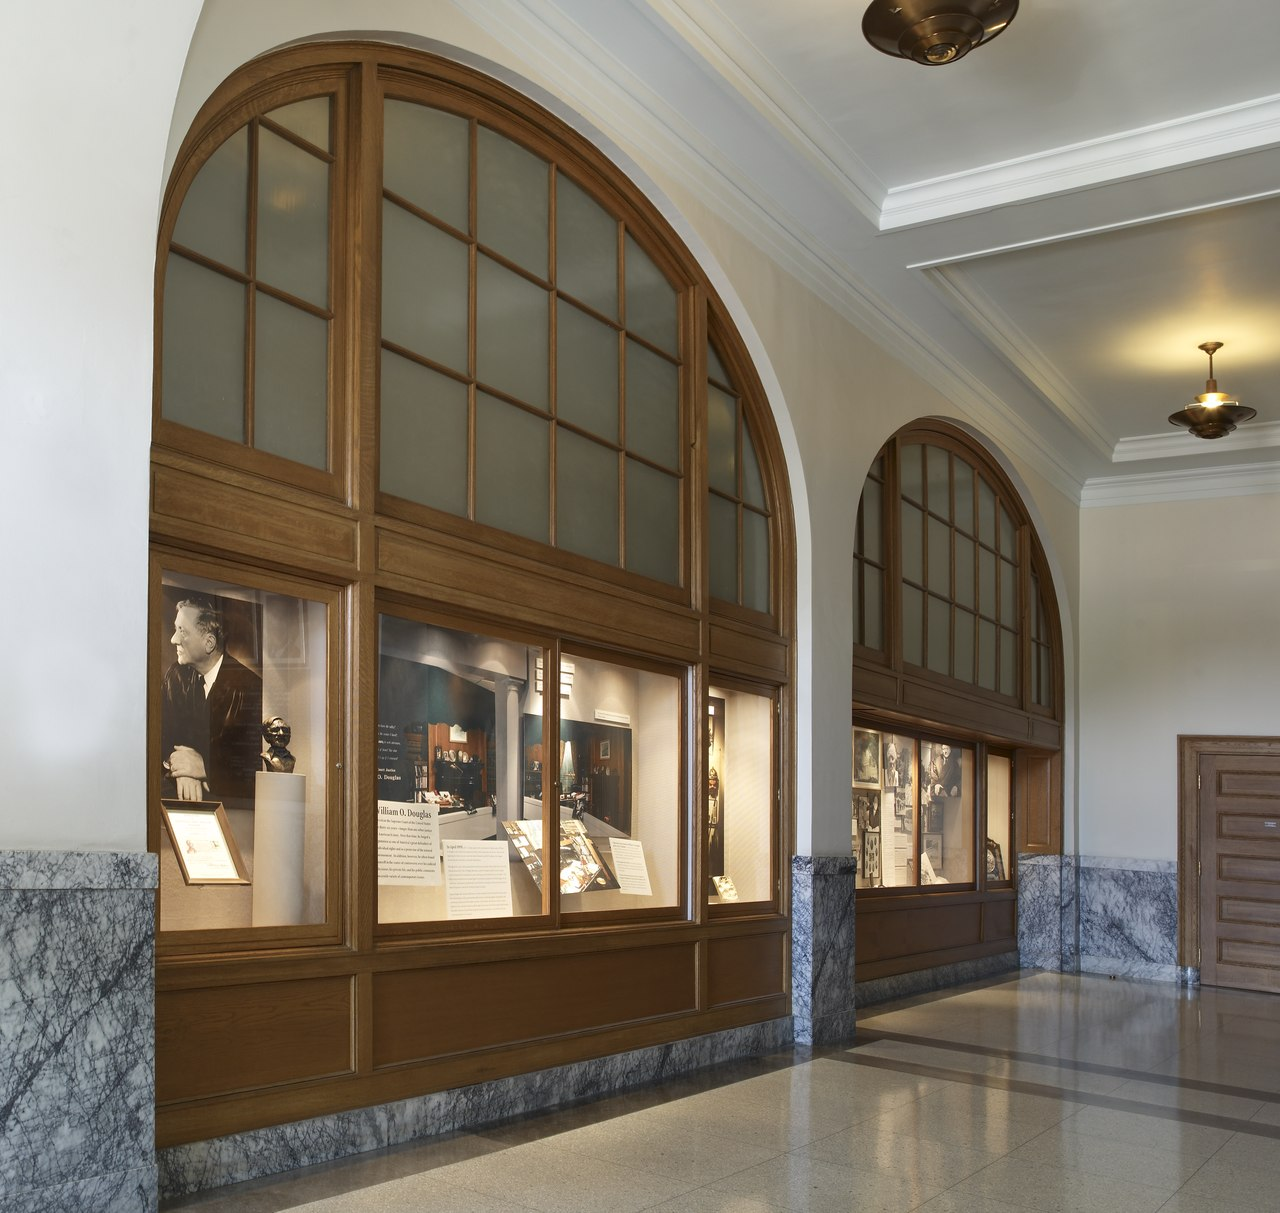 The building features exhibits describing the life and legacy of Justice Douglas.